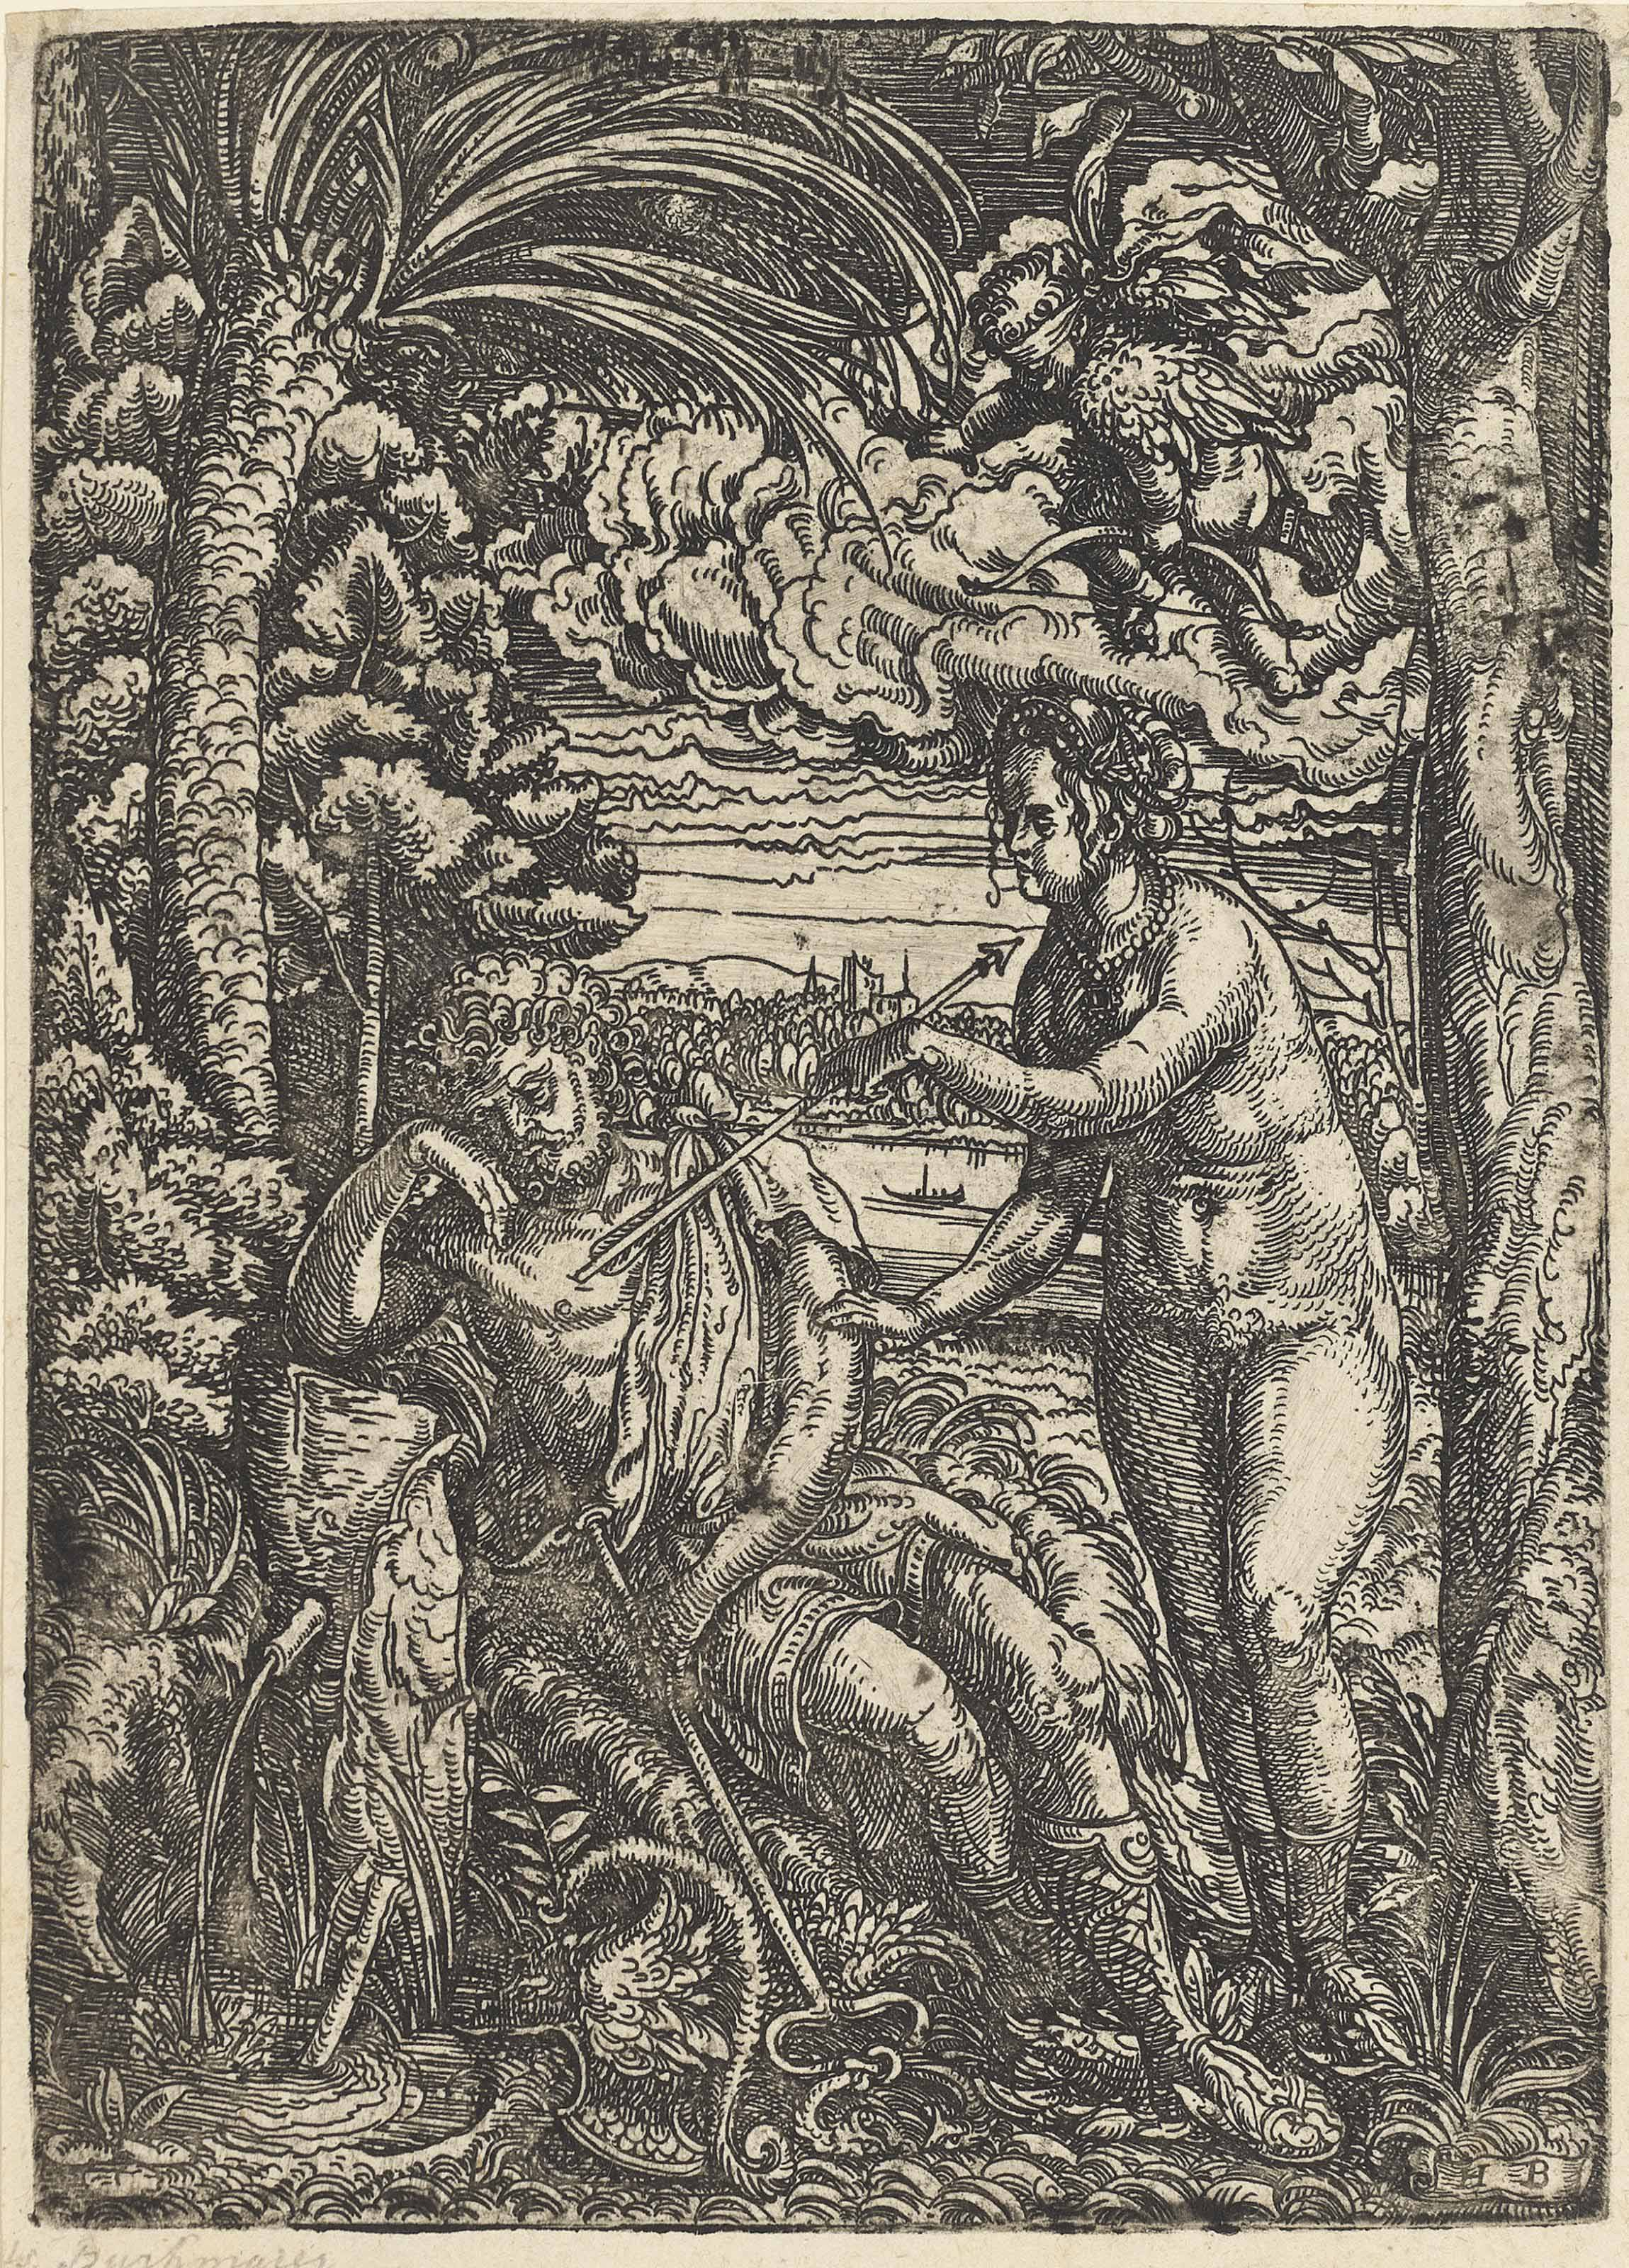 Venus and Mercury (Bartsch 1; Hollstein 834)